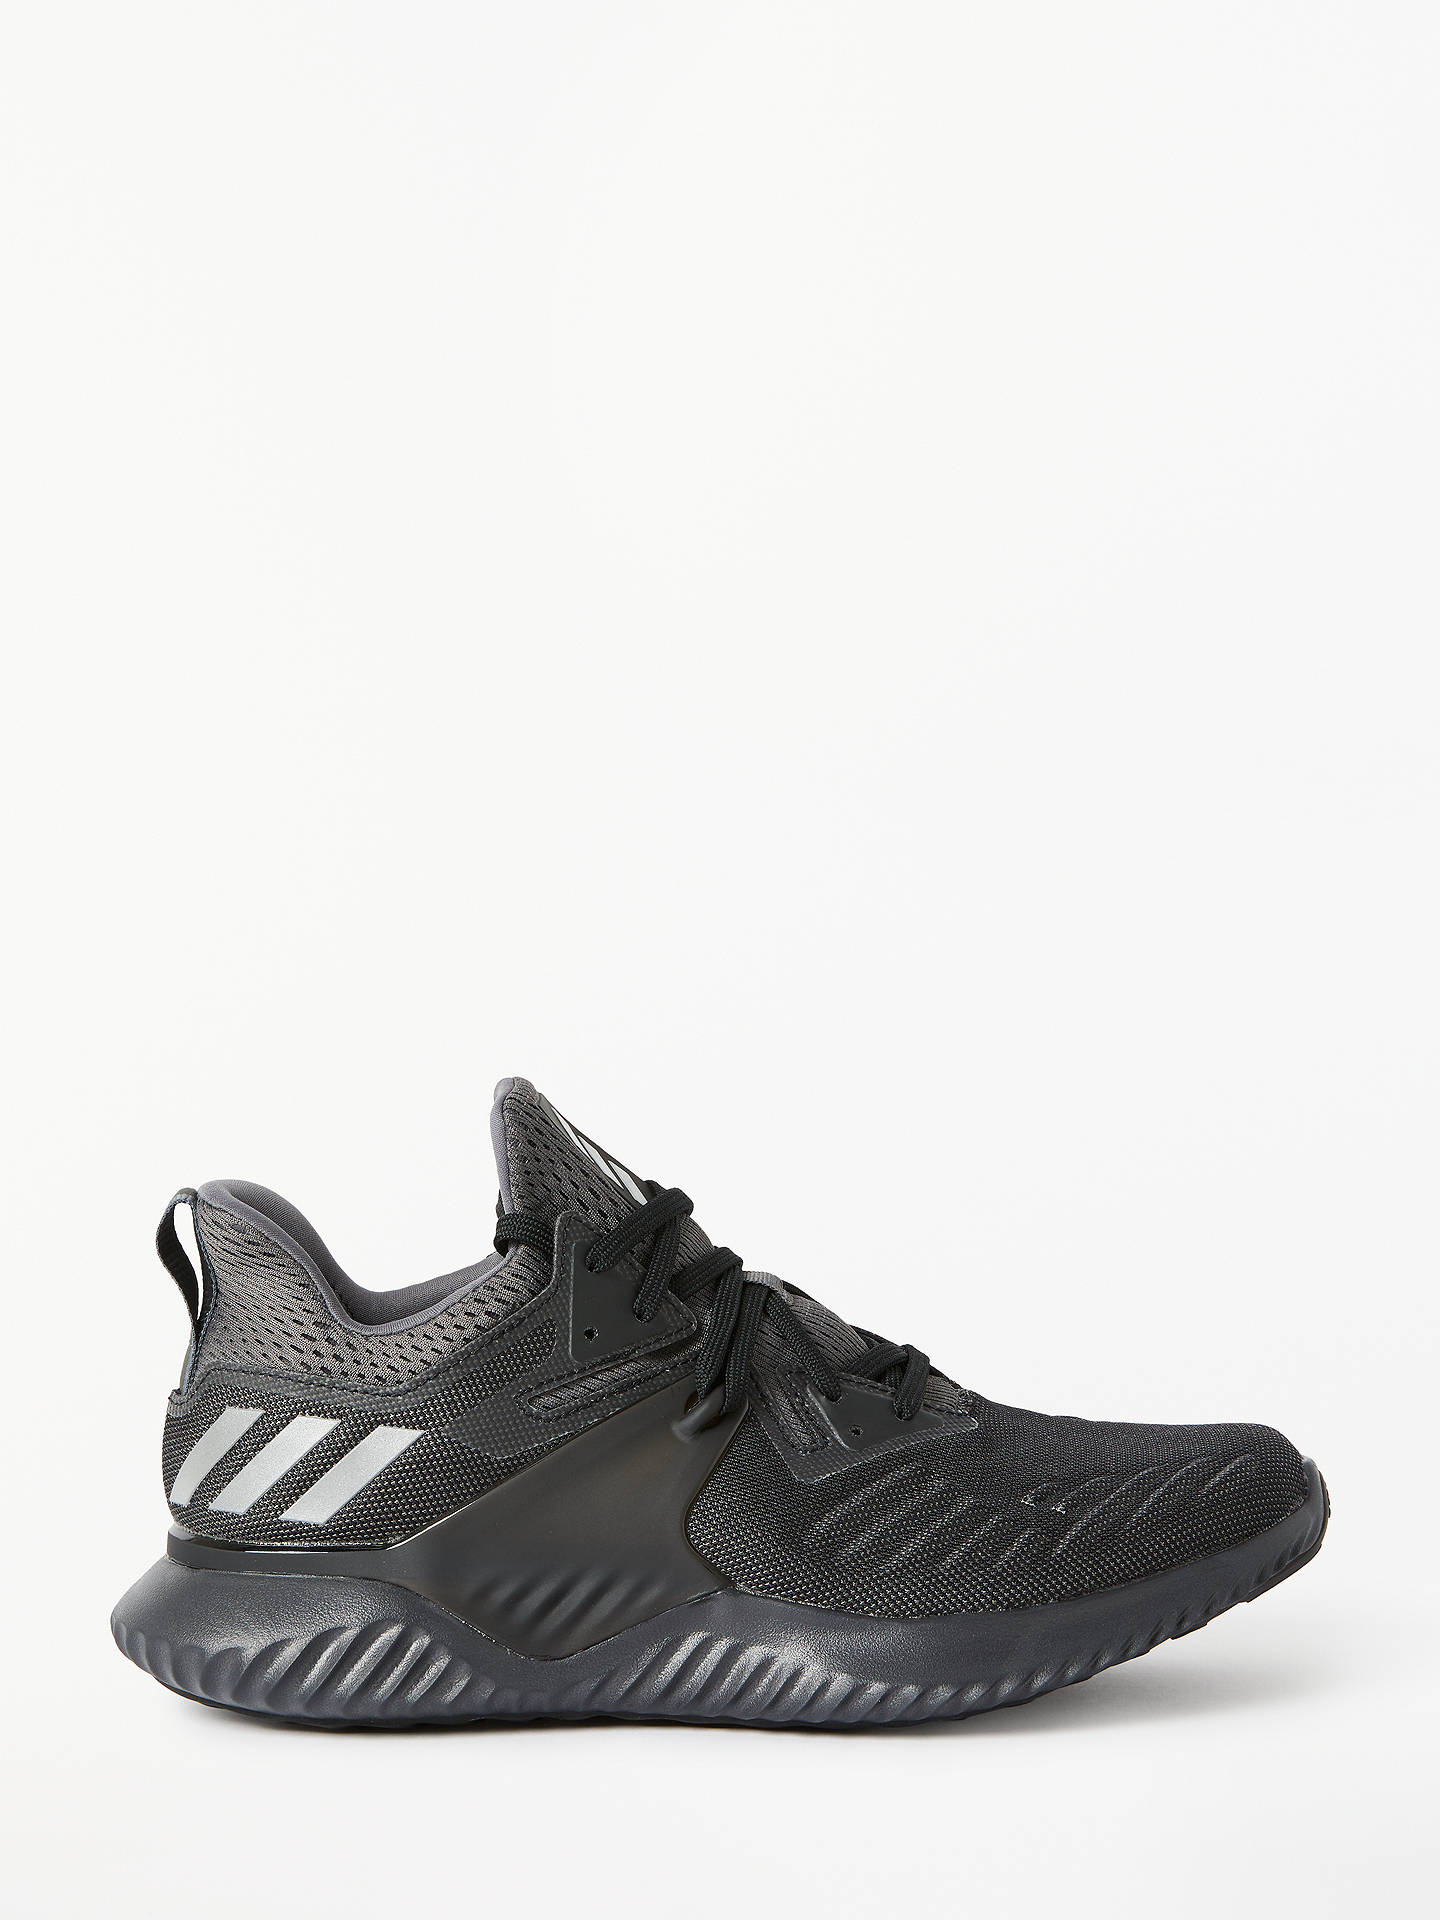 af73b2811 adidas Alphabounce Beyond 2.0 Men s Running Shoes at John Lewis ...